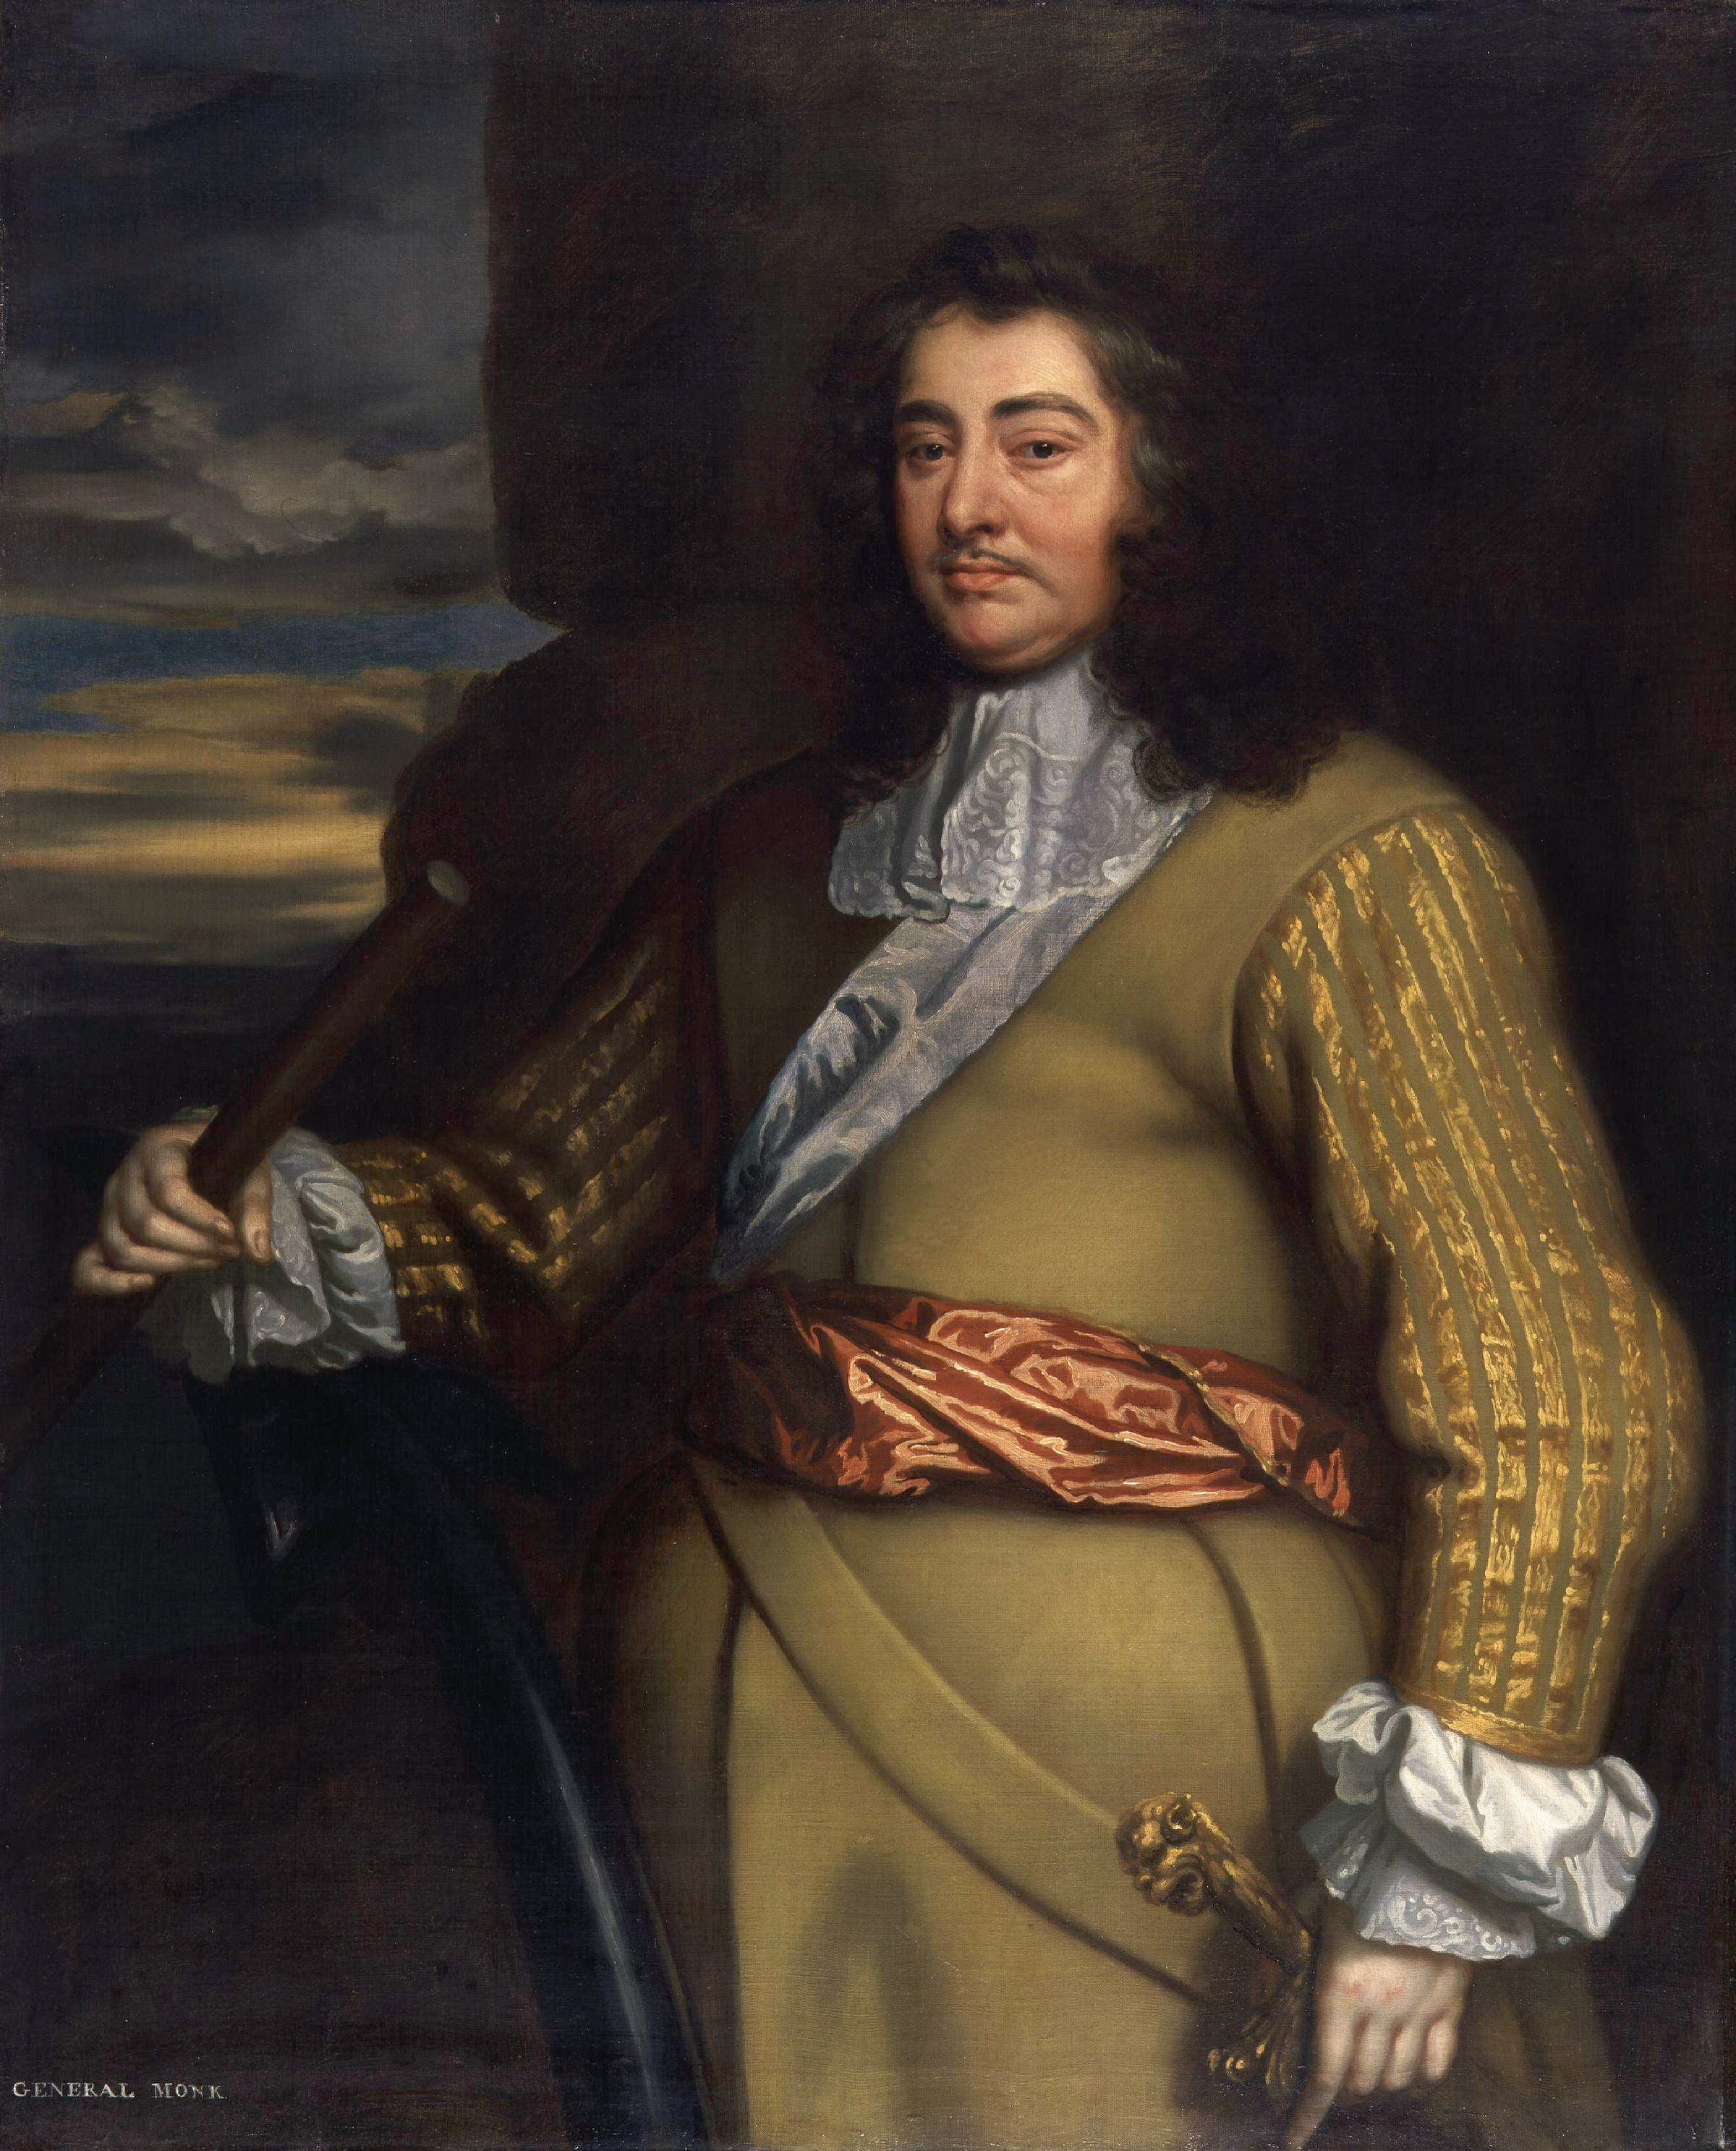 https://upload.wikimedia.org/wikipedia/commons/5/59/George_Monck_1st_Duke_of_Albemarle_Studio_of_Lely.jpg